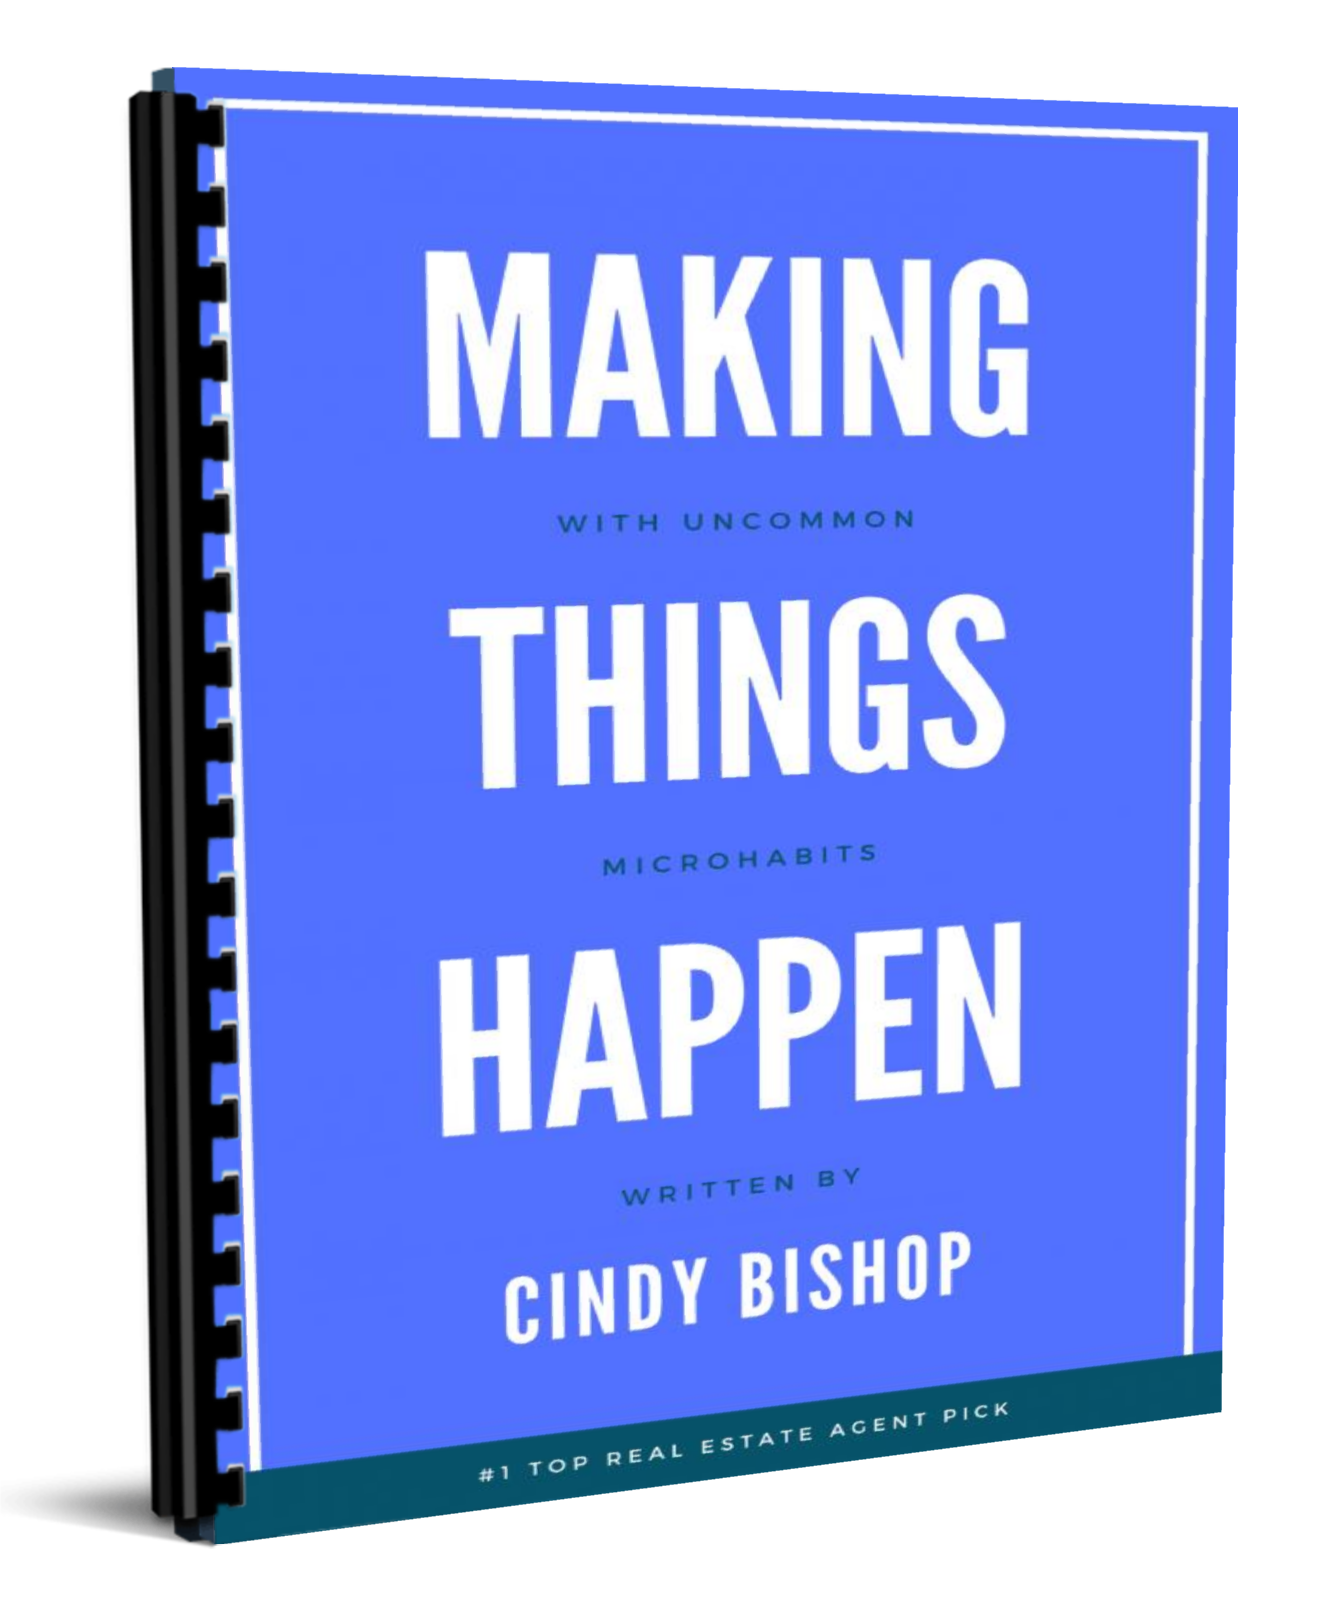 Making it happen with Micro Habits